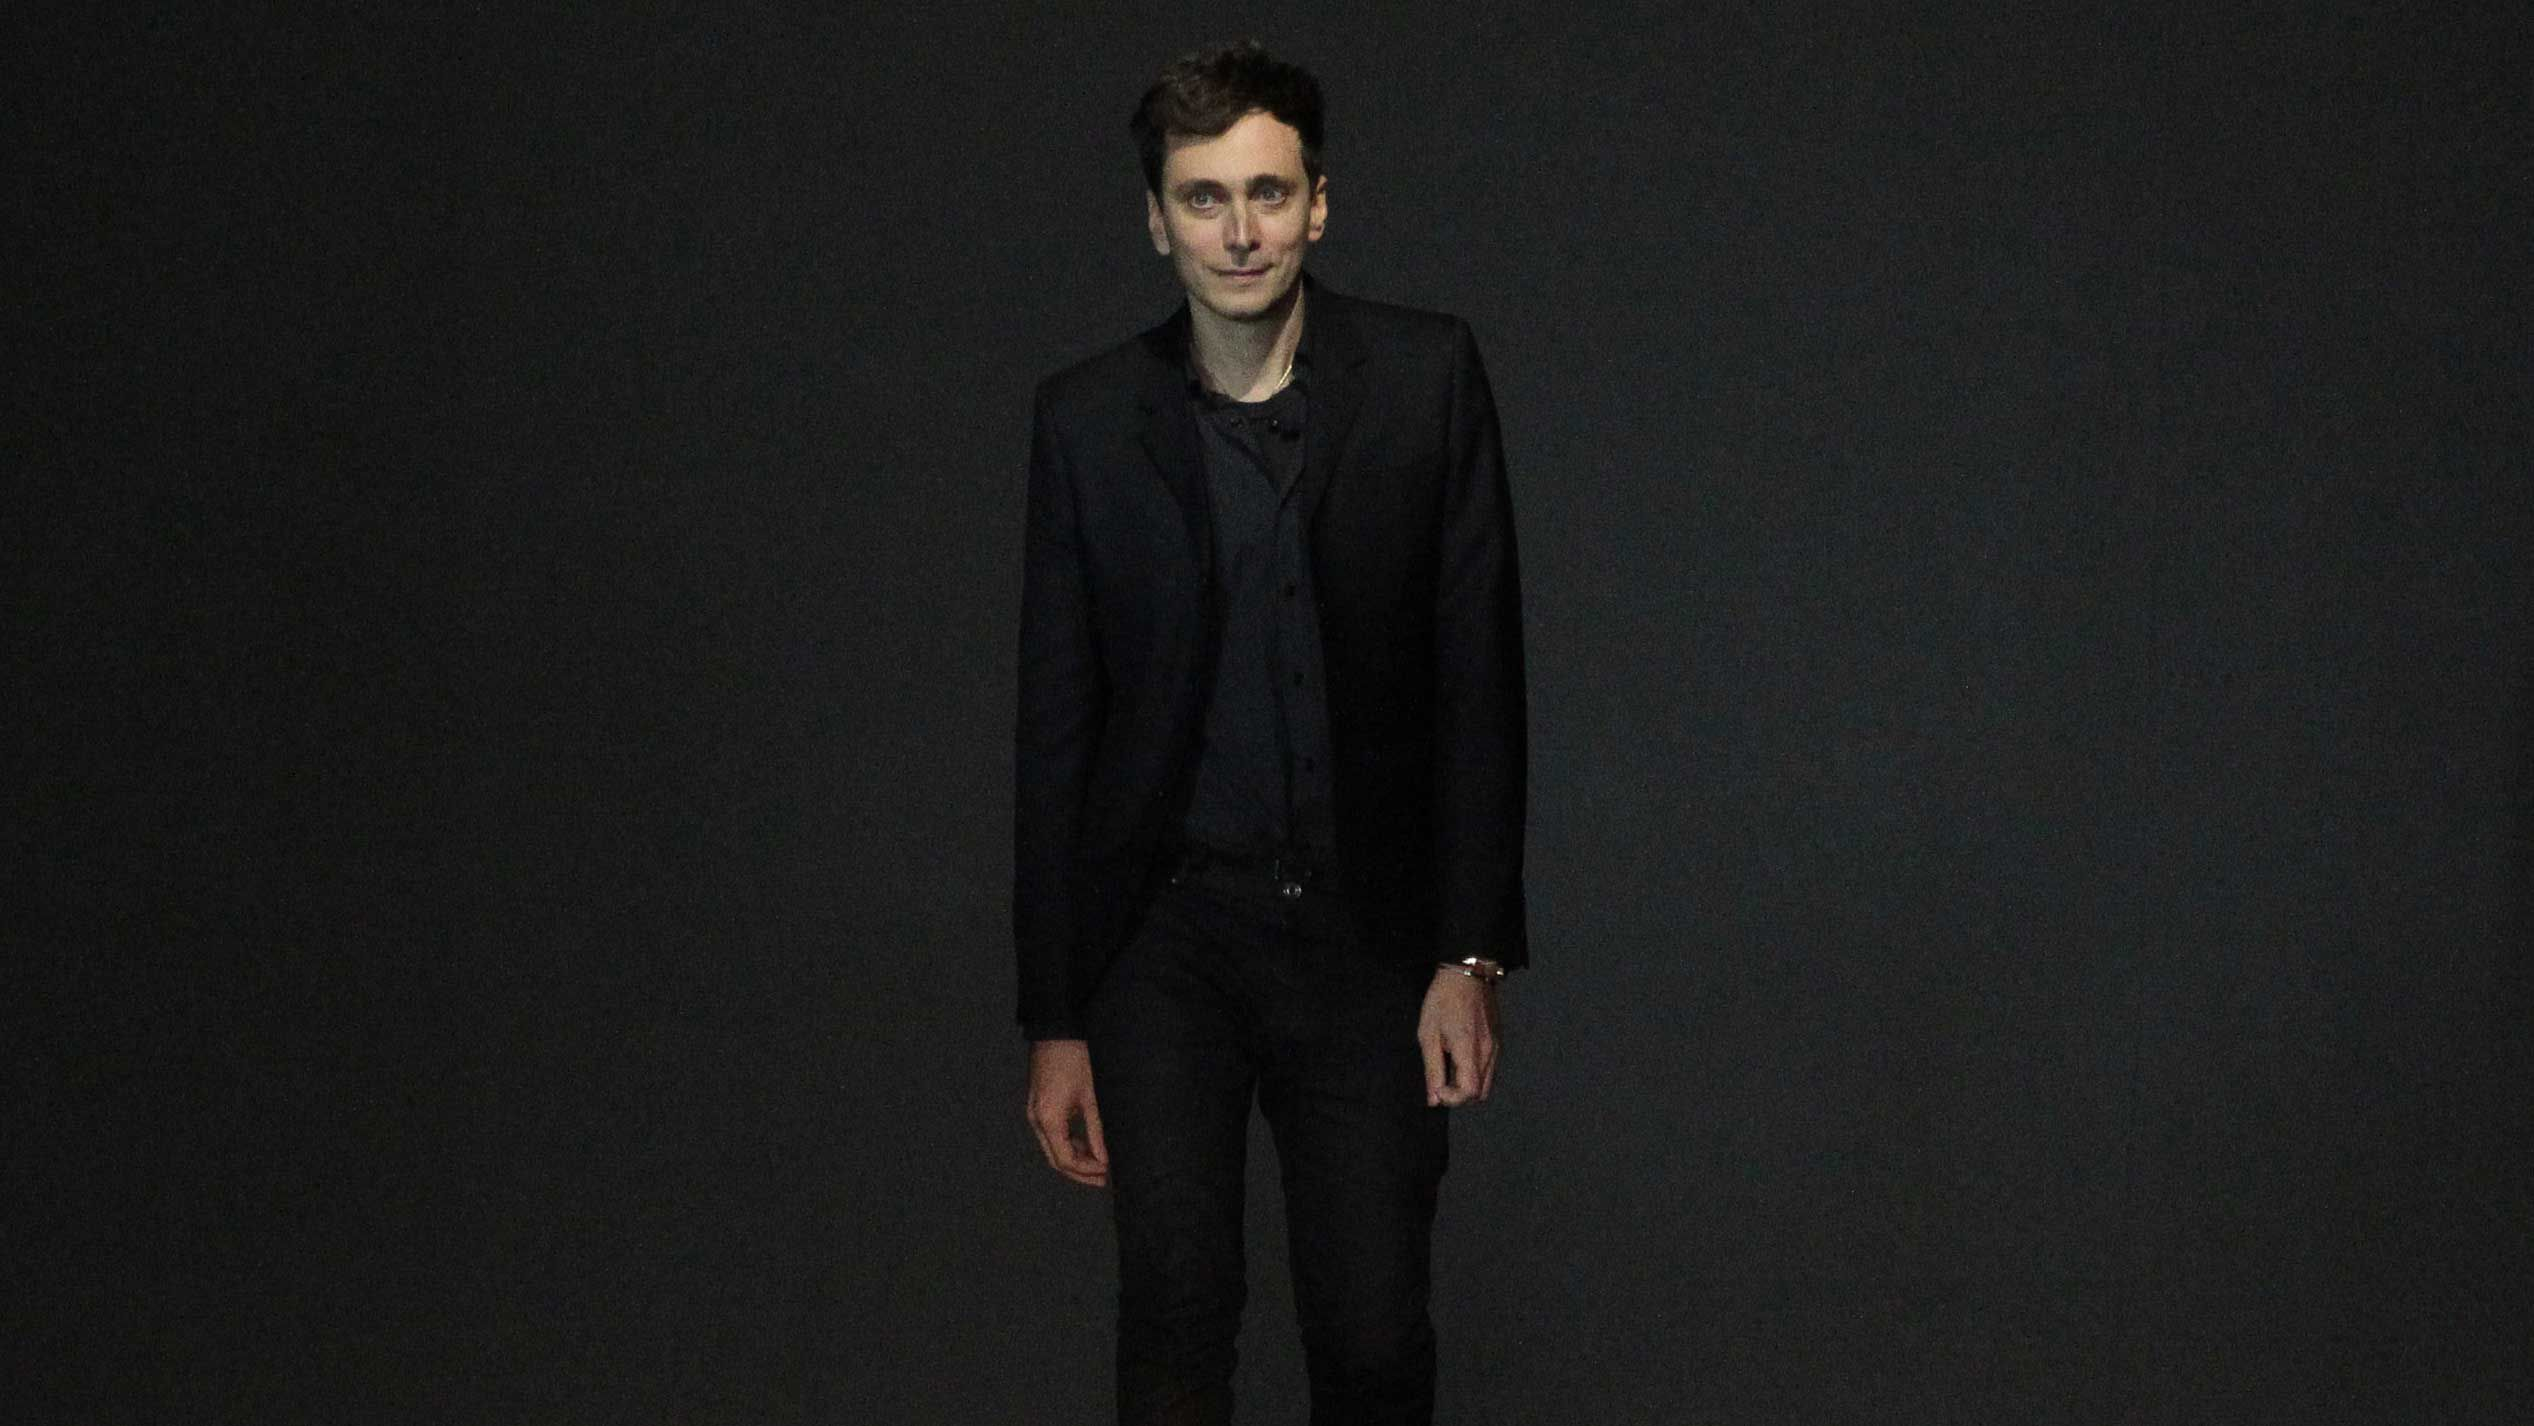 Hedi Slimane is suing Saint Laurent's parent company